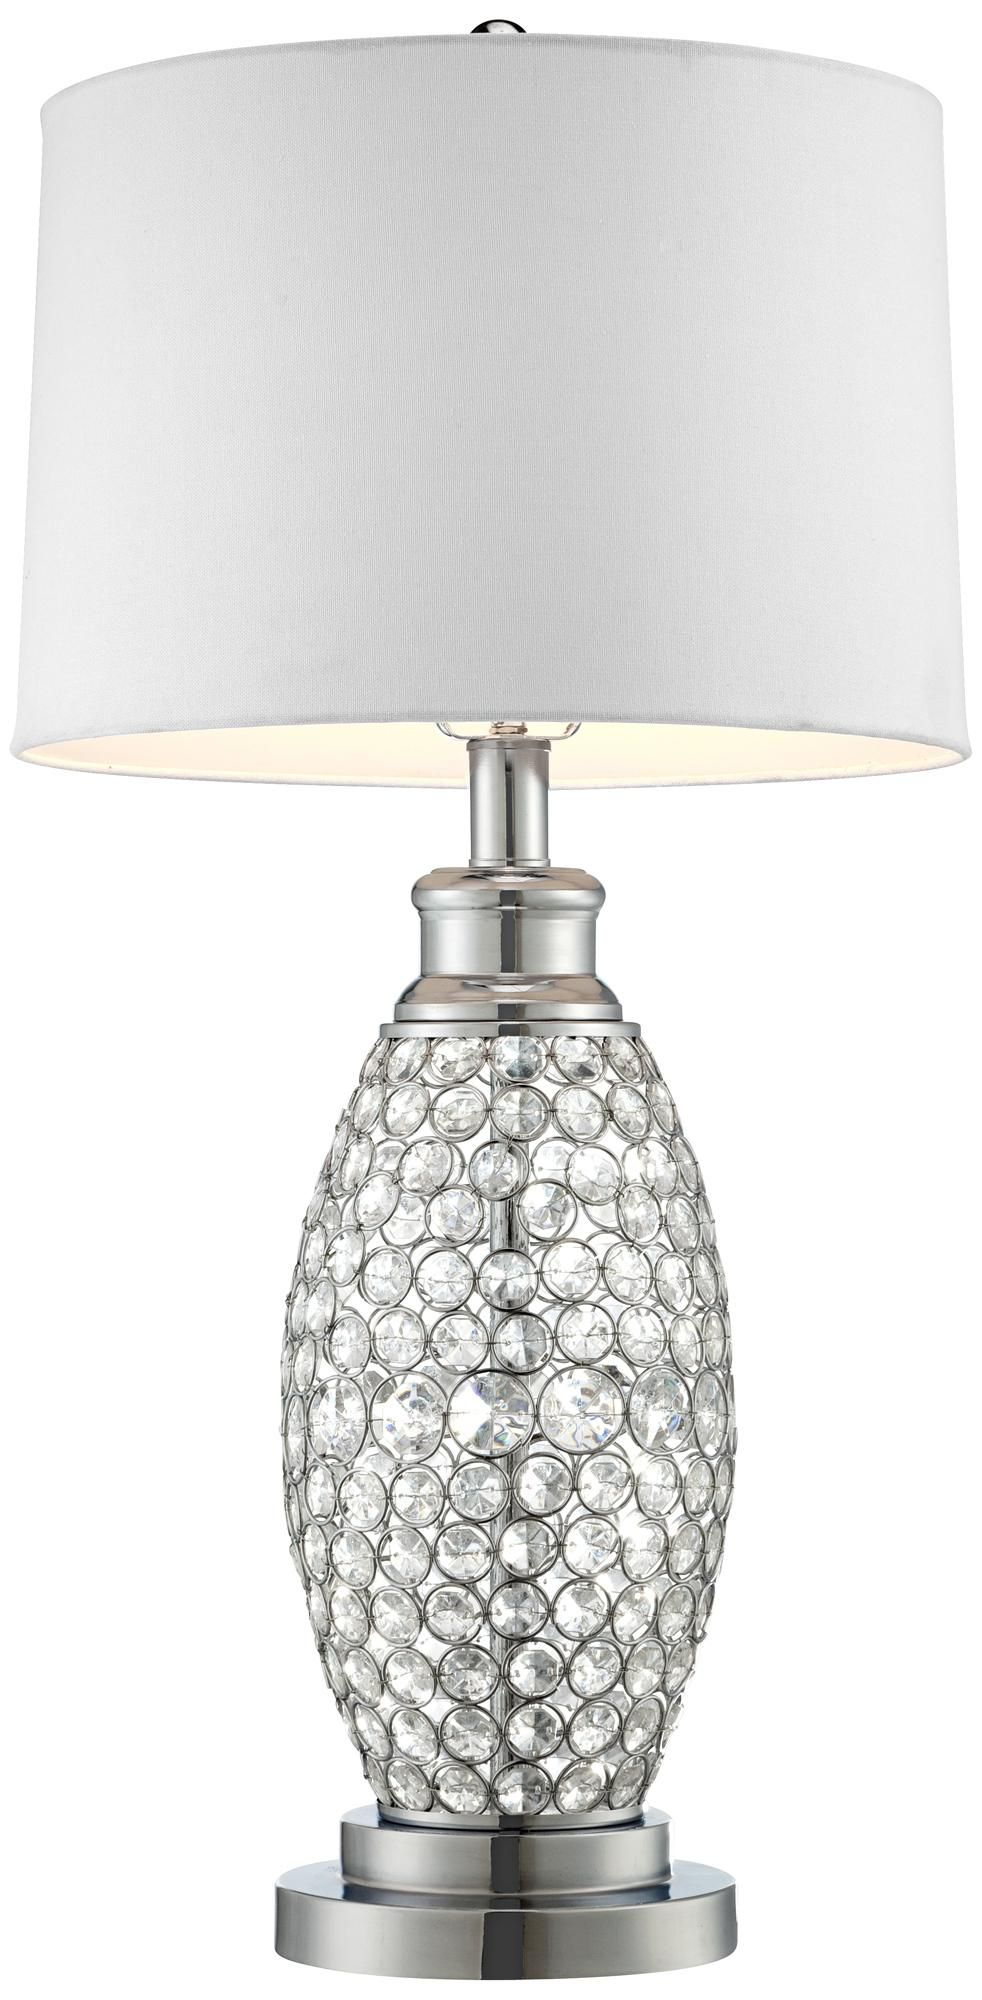 Possini Euro Design Beaded Table Lamp With White Shade My Style